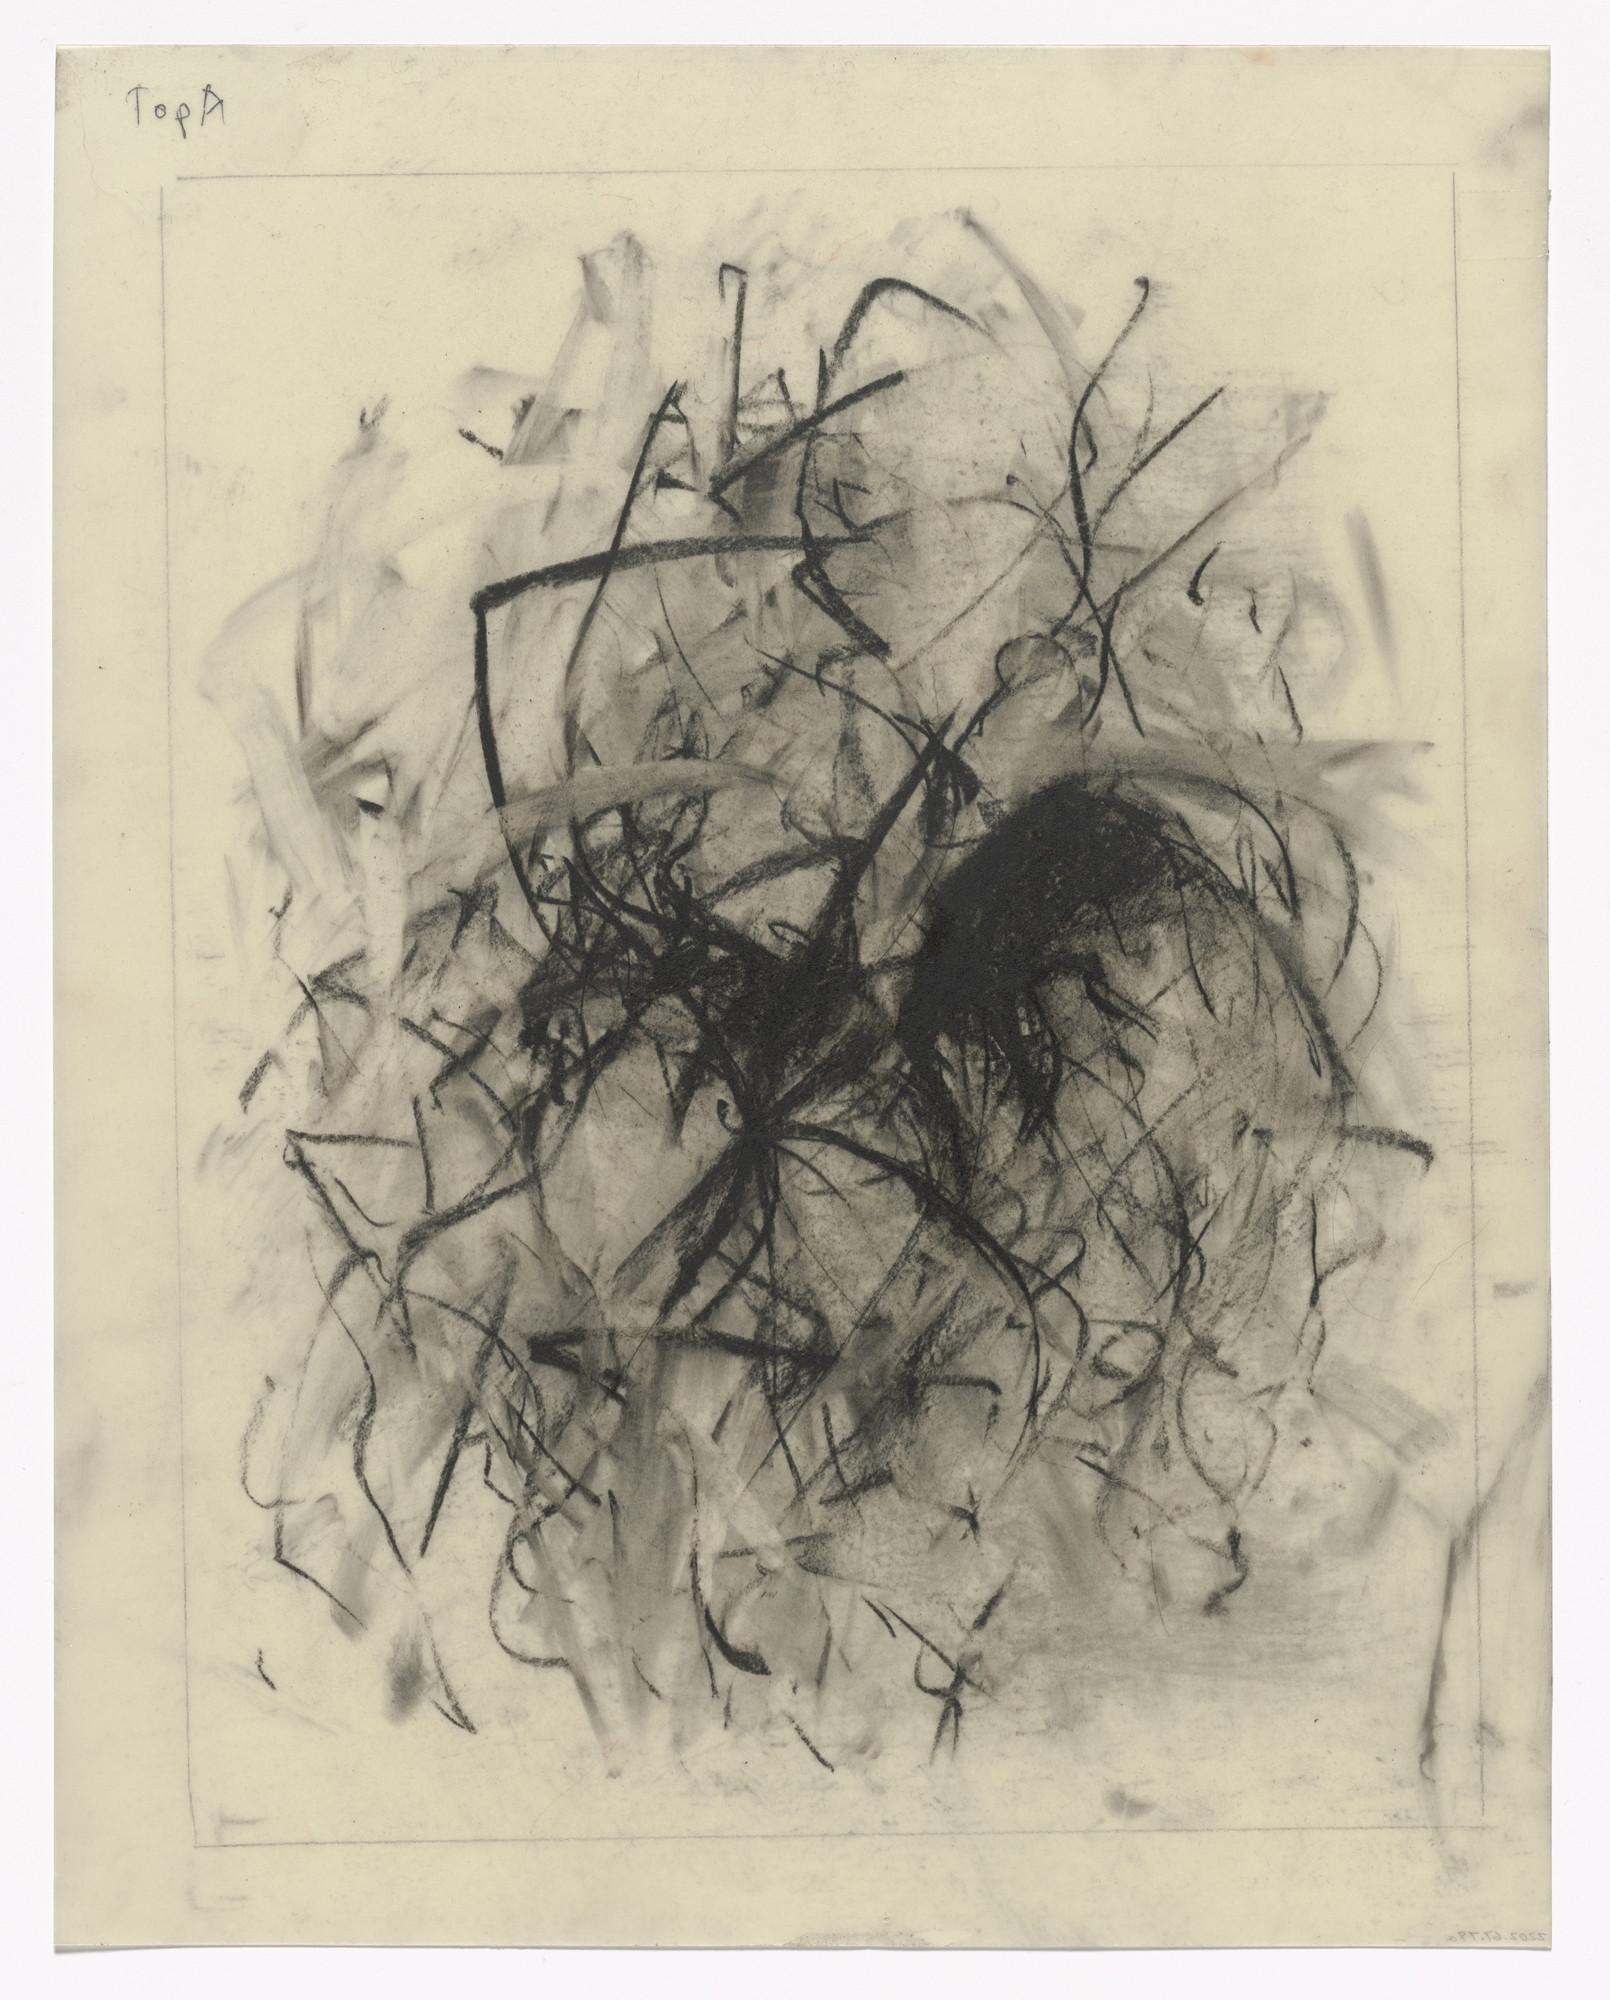 Joan Mitchell. Unused preparatory drawing for In Memory of My Feelings. 1967